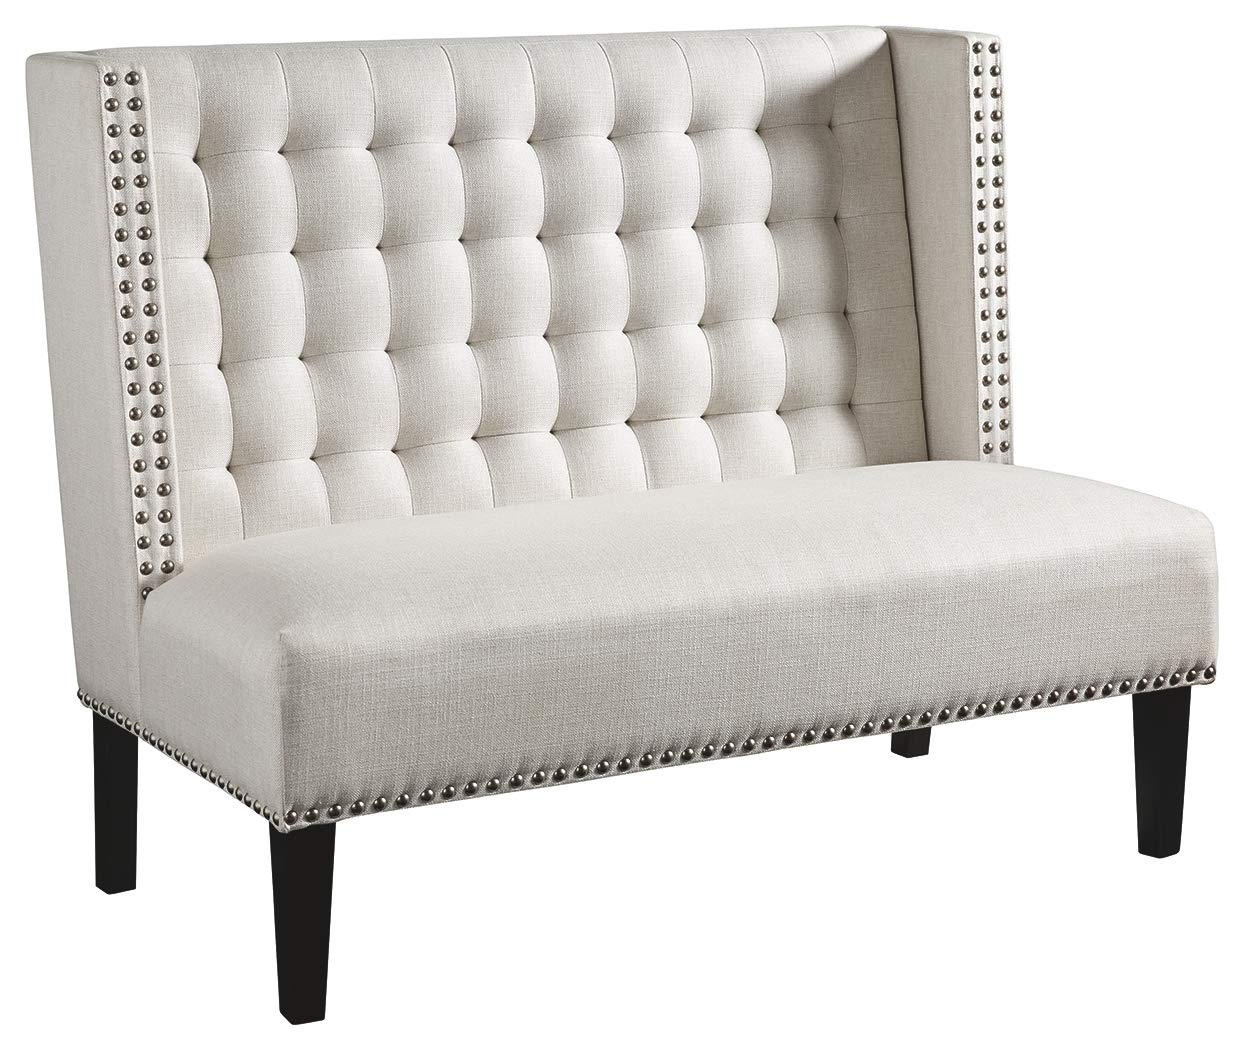 Signature Design by Ashley A3000116 Beauland Accent Bench, Settee